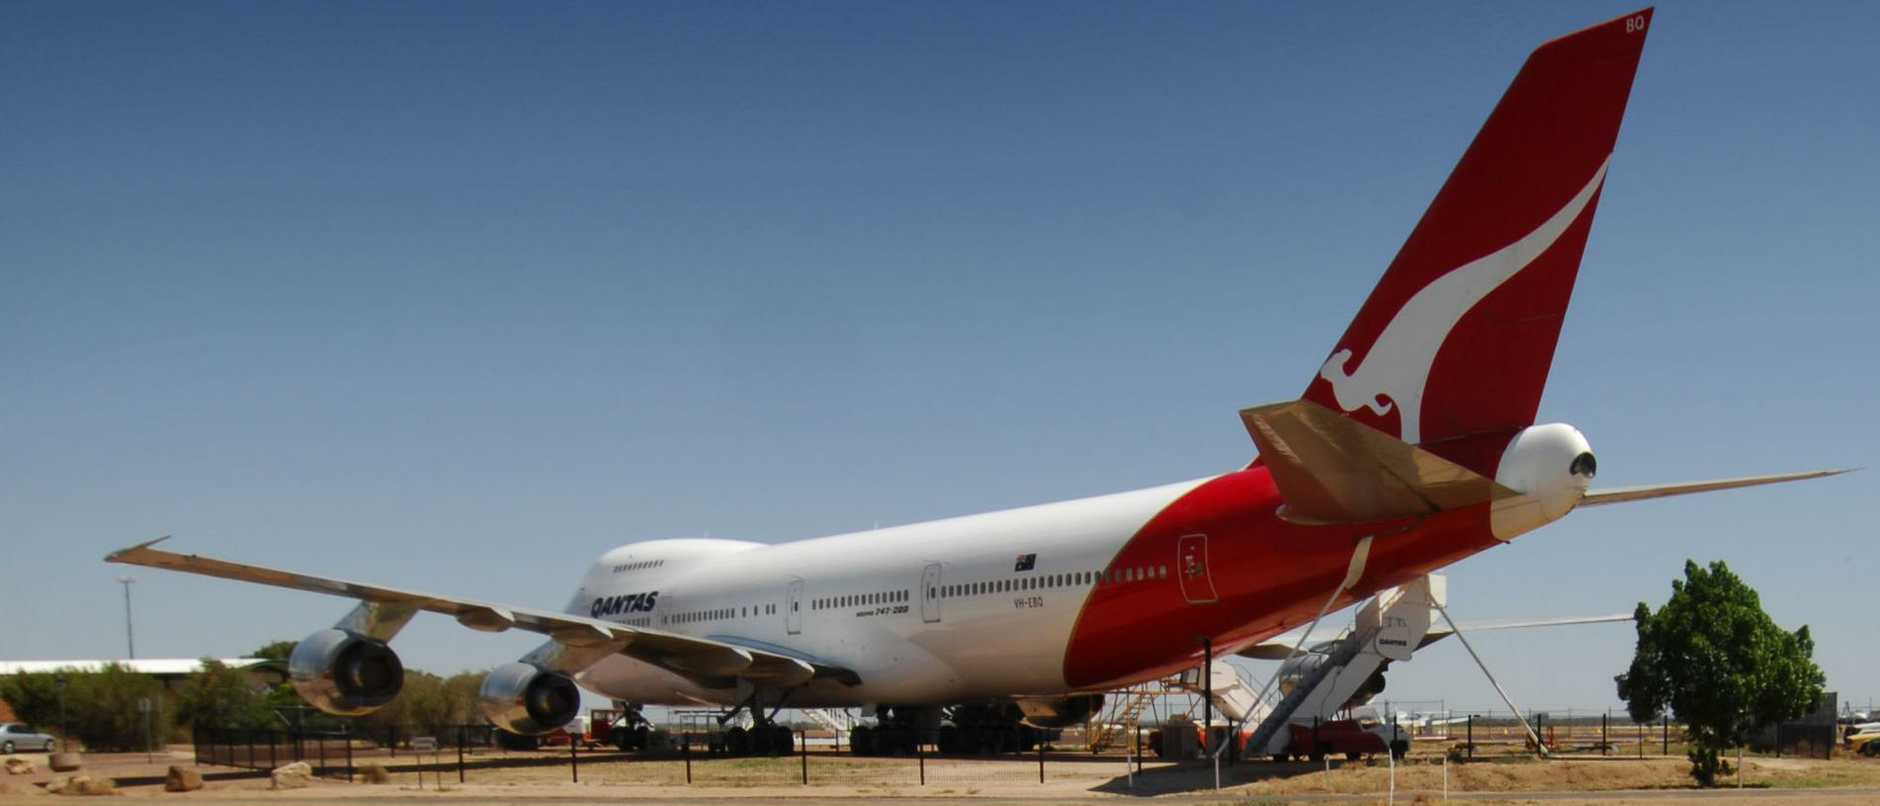 Prominent local Longreach business man Roly Gooding , rarely travels by Qantas as the local fares are too expensive,  prefers bus, under the 747 at the Qantas museum , at the airlines birth place,  at Longreach airport.